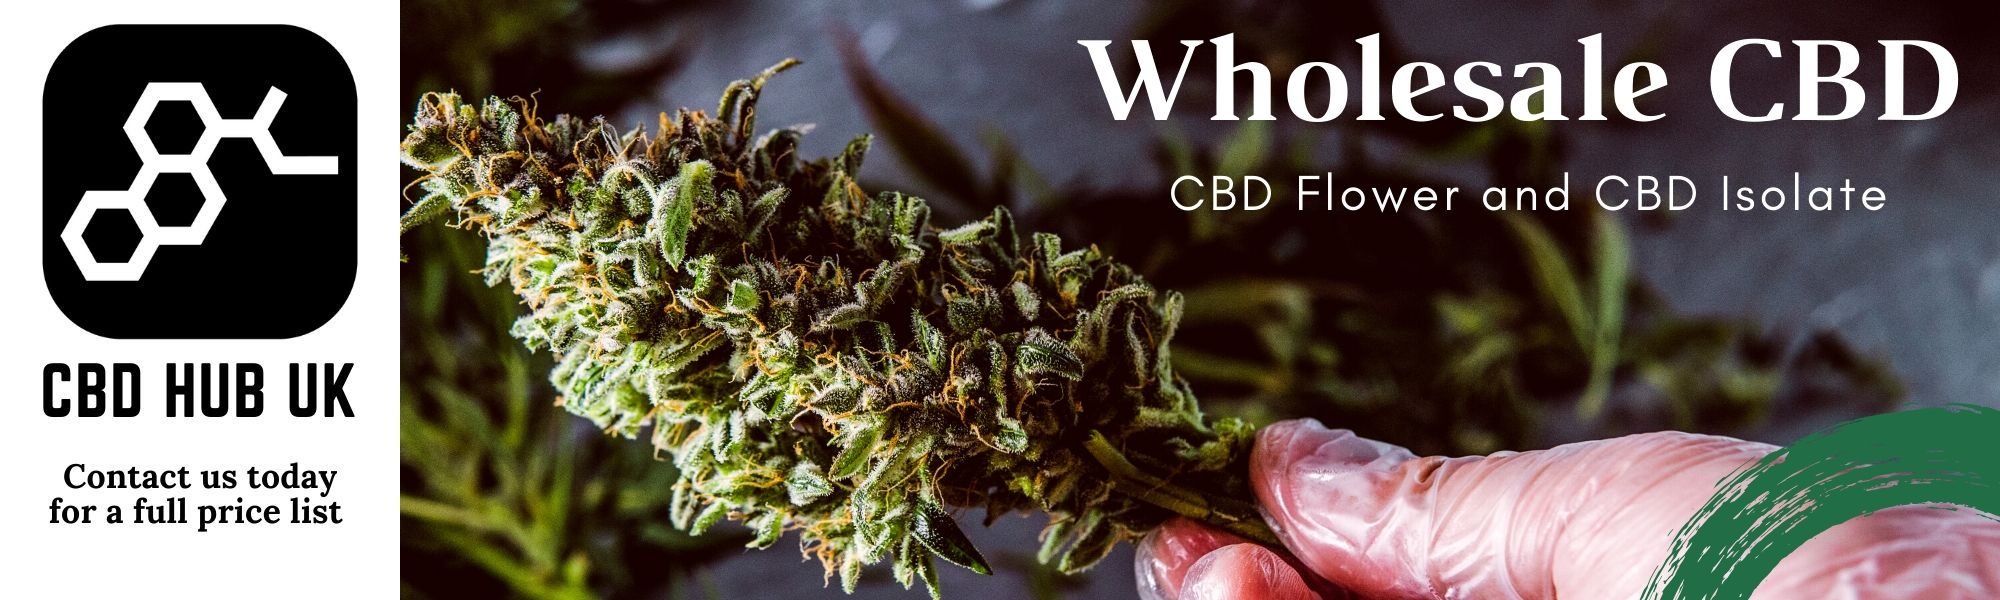 CBD Flower Wholesale